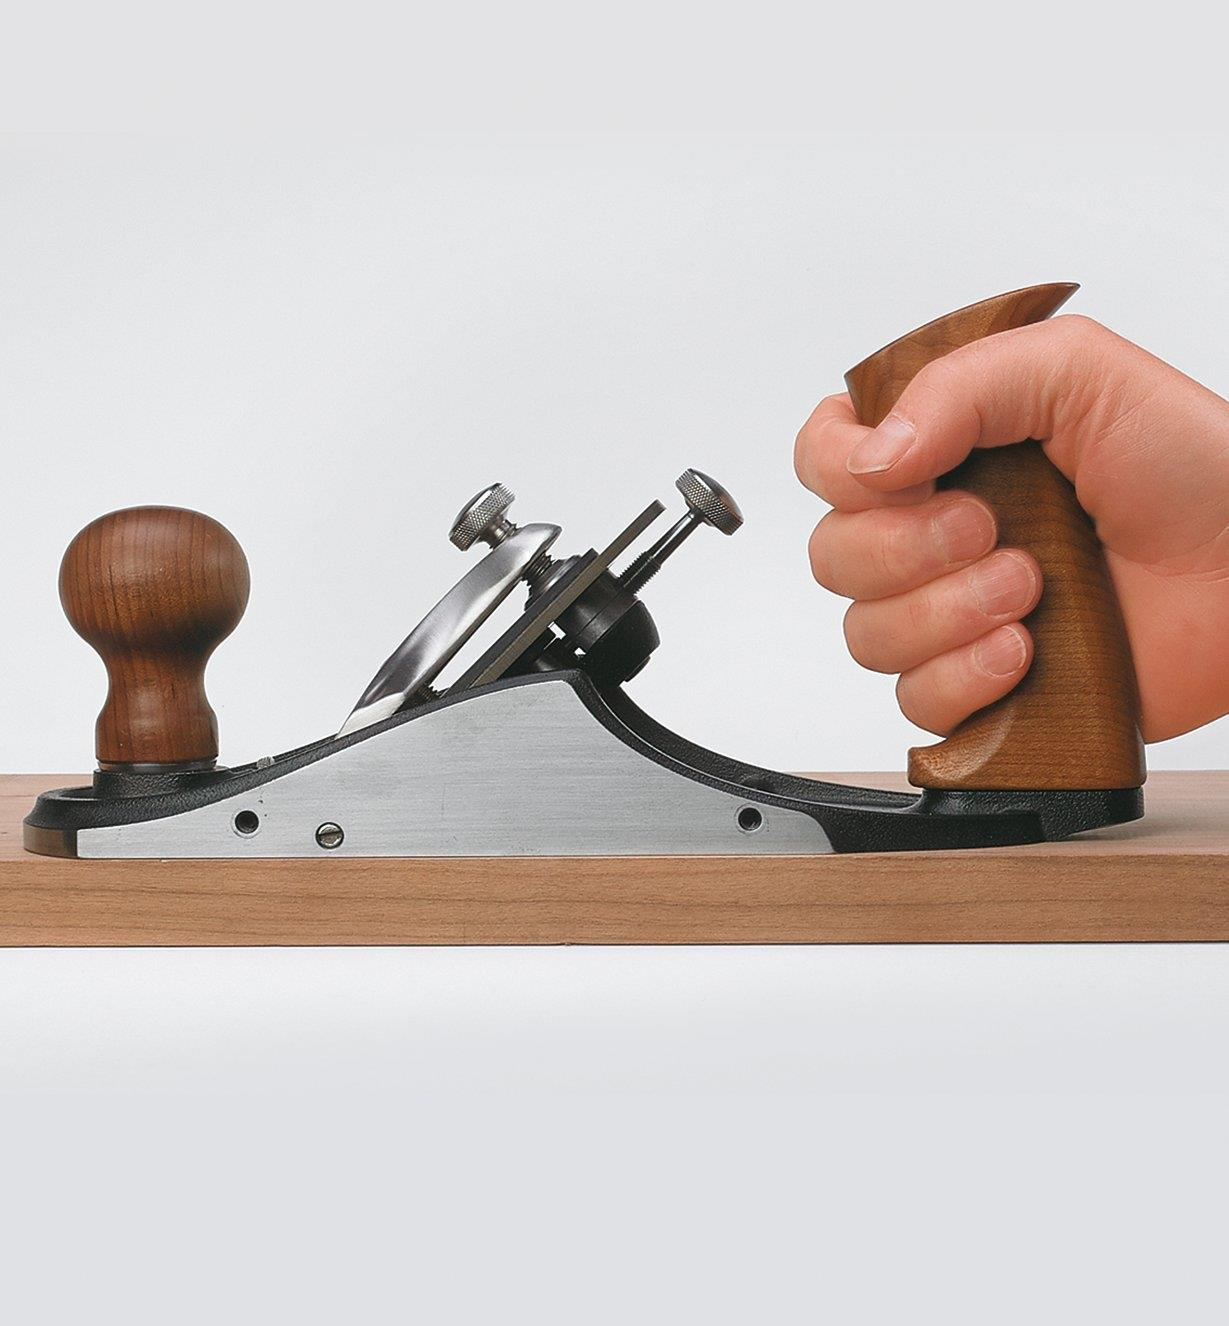 Gripping a tote installed on a custom bench plane